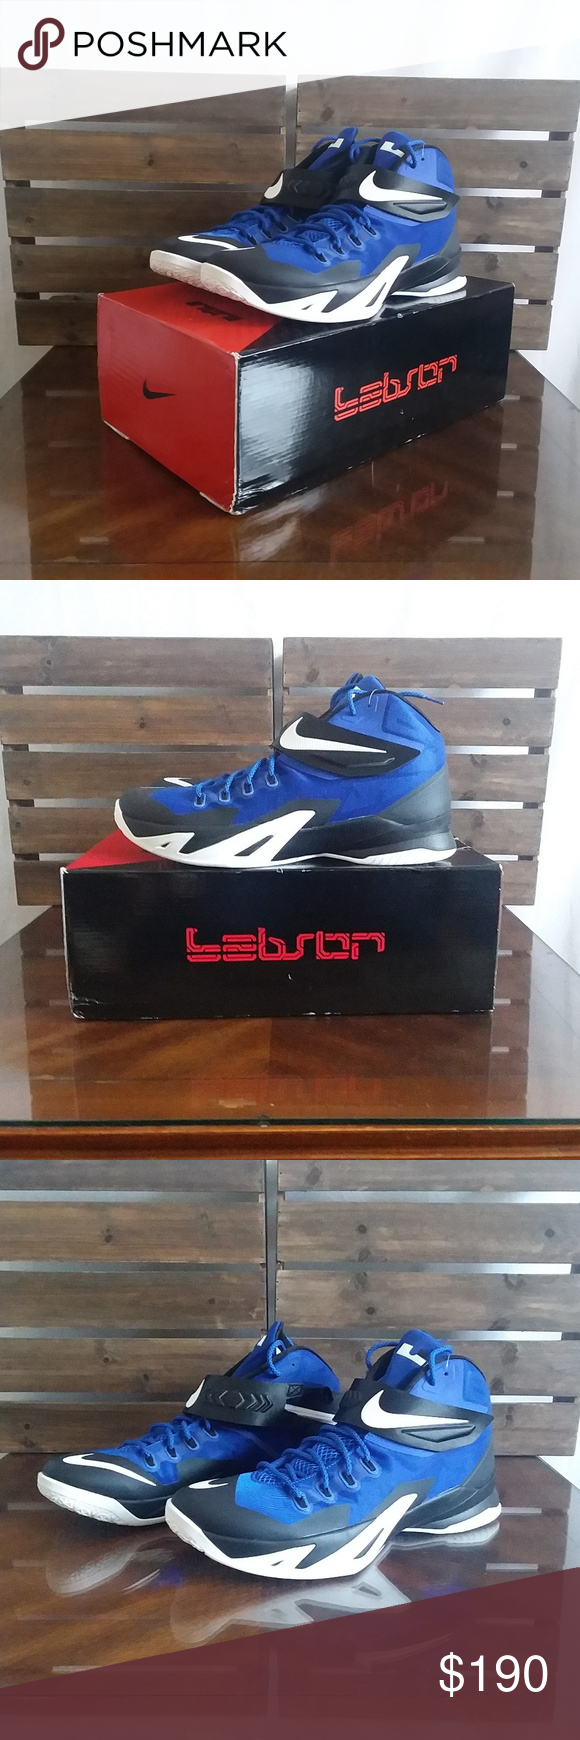 a8389aff0b48 Nike Lebron Soldiers 8 Shoes New Nike Lebron Men s Size 15 Nike Zoom  Soldiers 8 Basketball Shoes New Blue White Black Nike Shoes Athletic Shoes